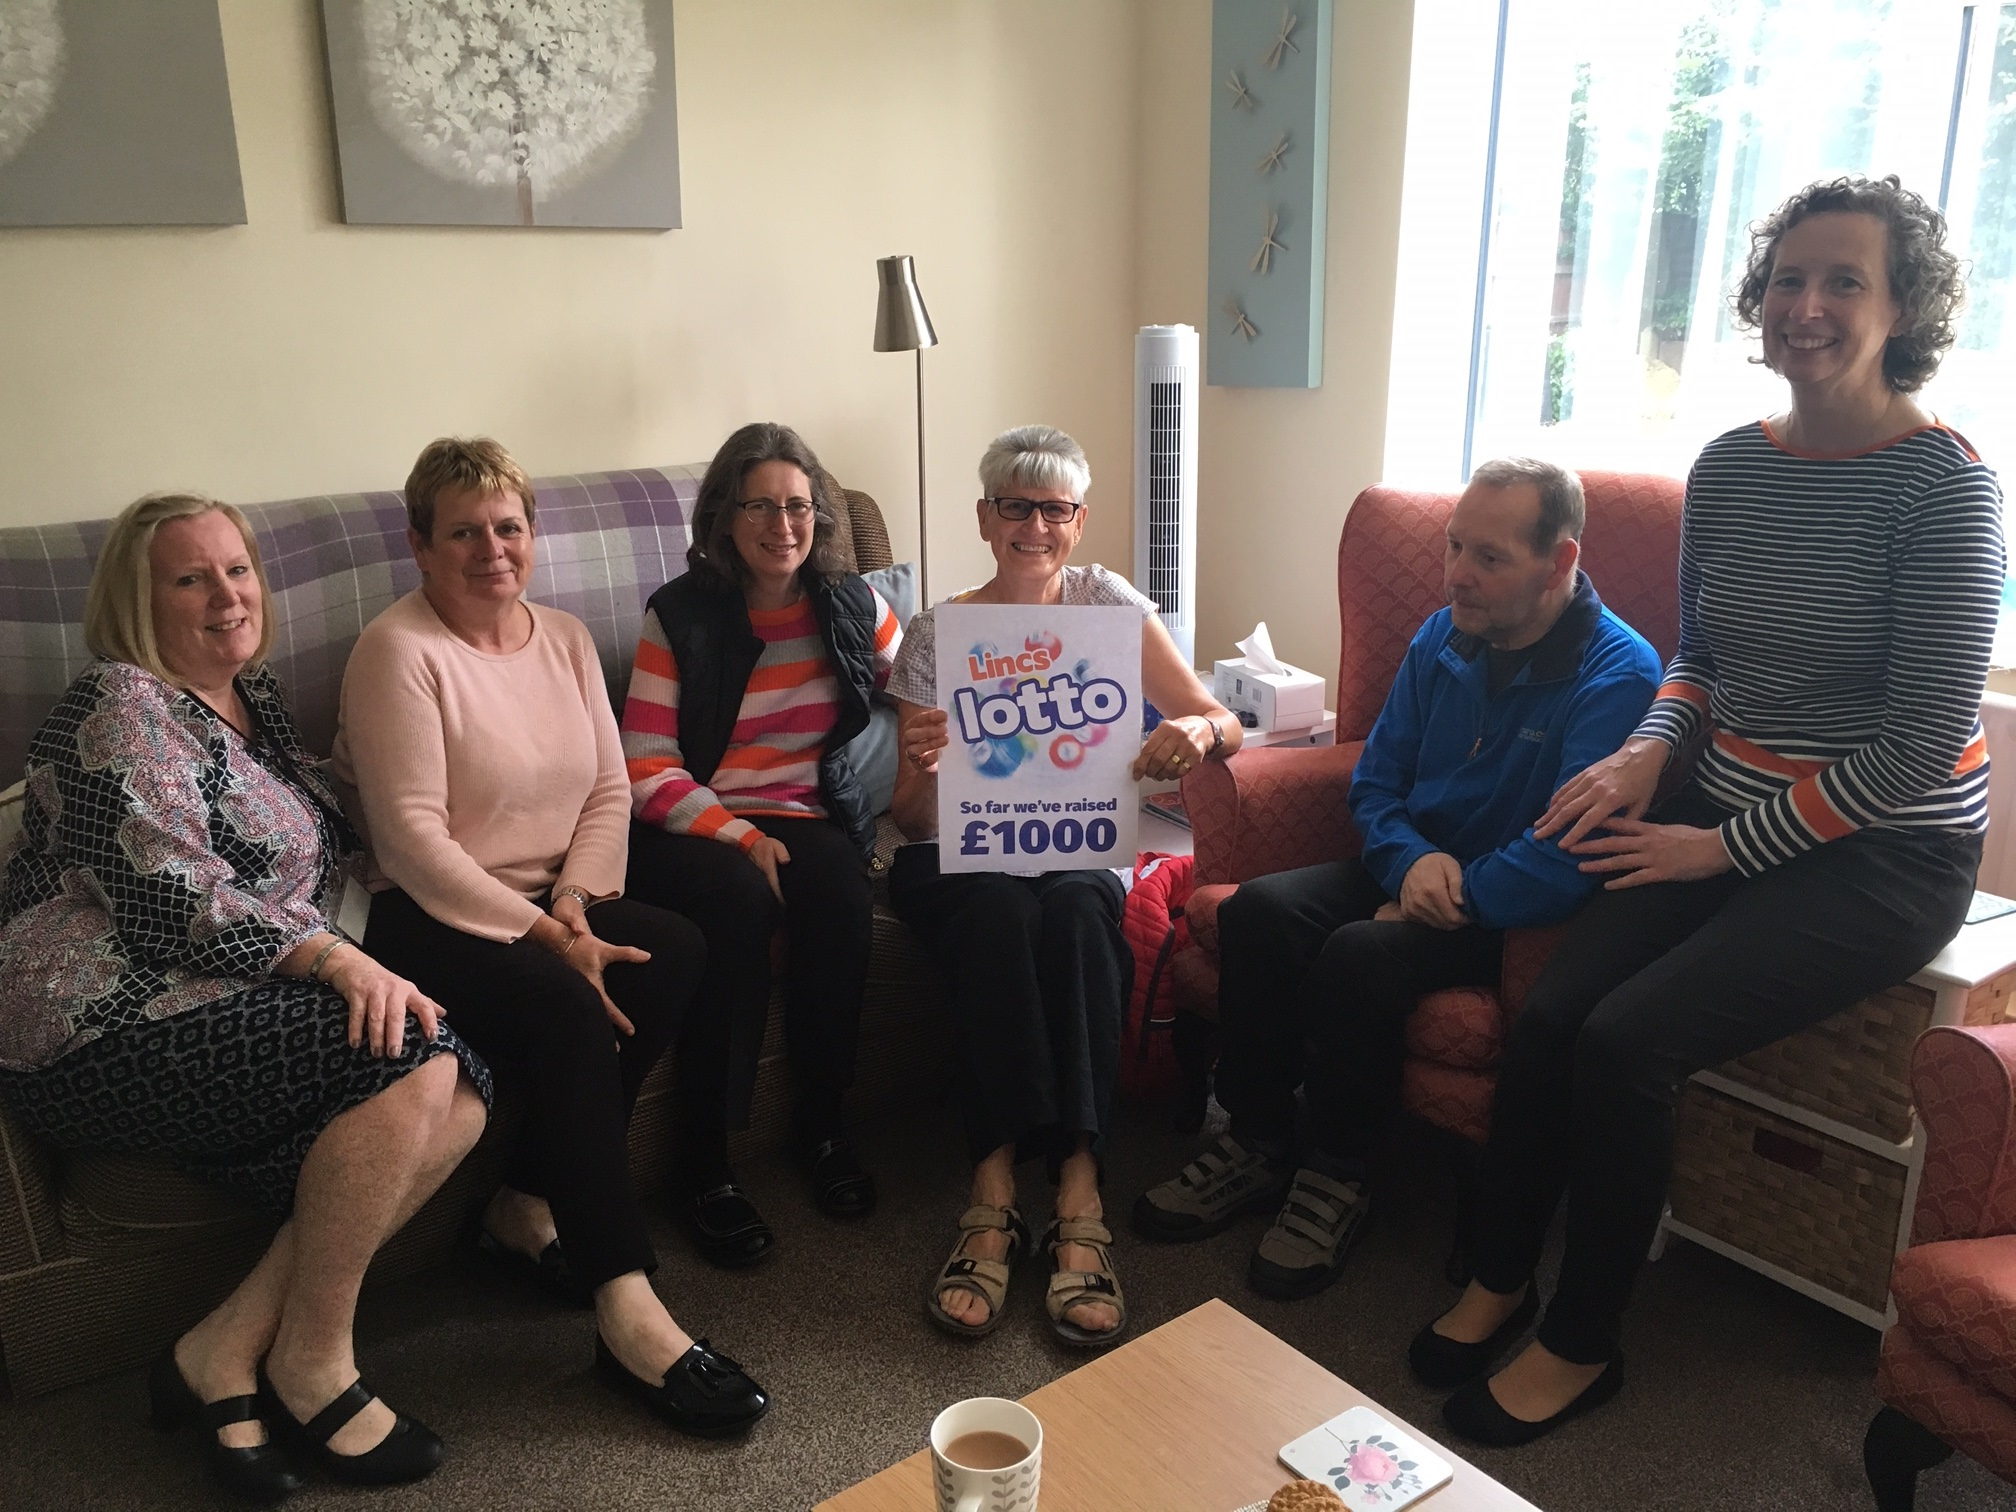 Peggy's World CiC raises £1,000 through Lincs Lotto